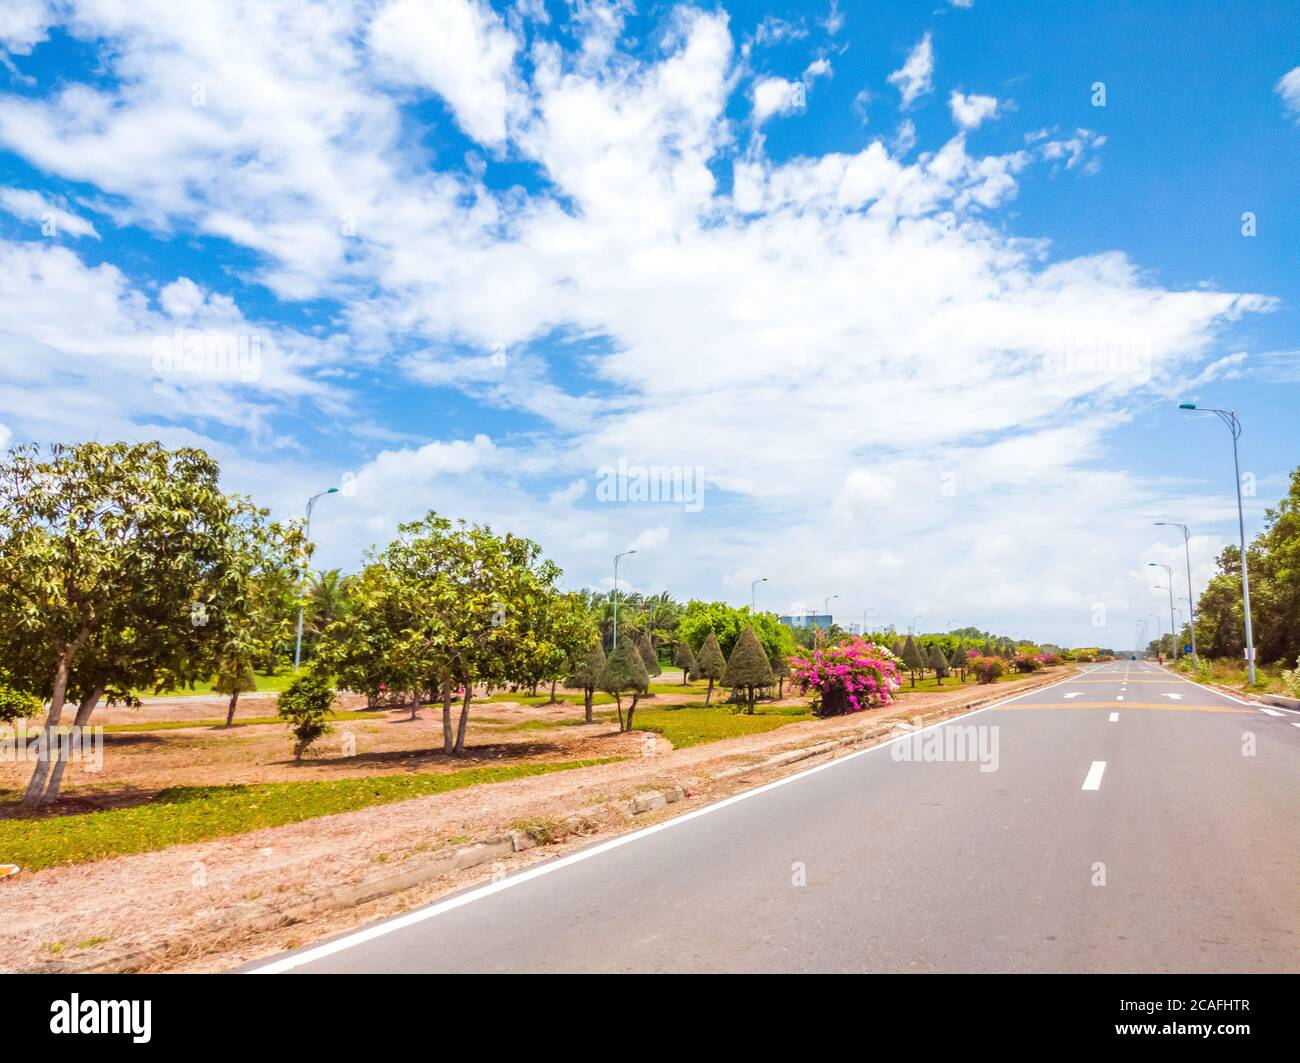 Beautiful view of wide open road with a paved highway stretching out as far as the eye can see with small green hills, pink flowers under a bright Stock Photo